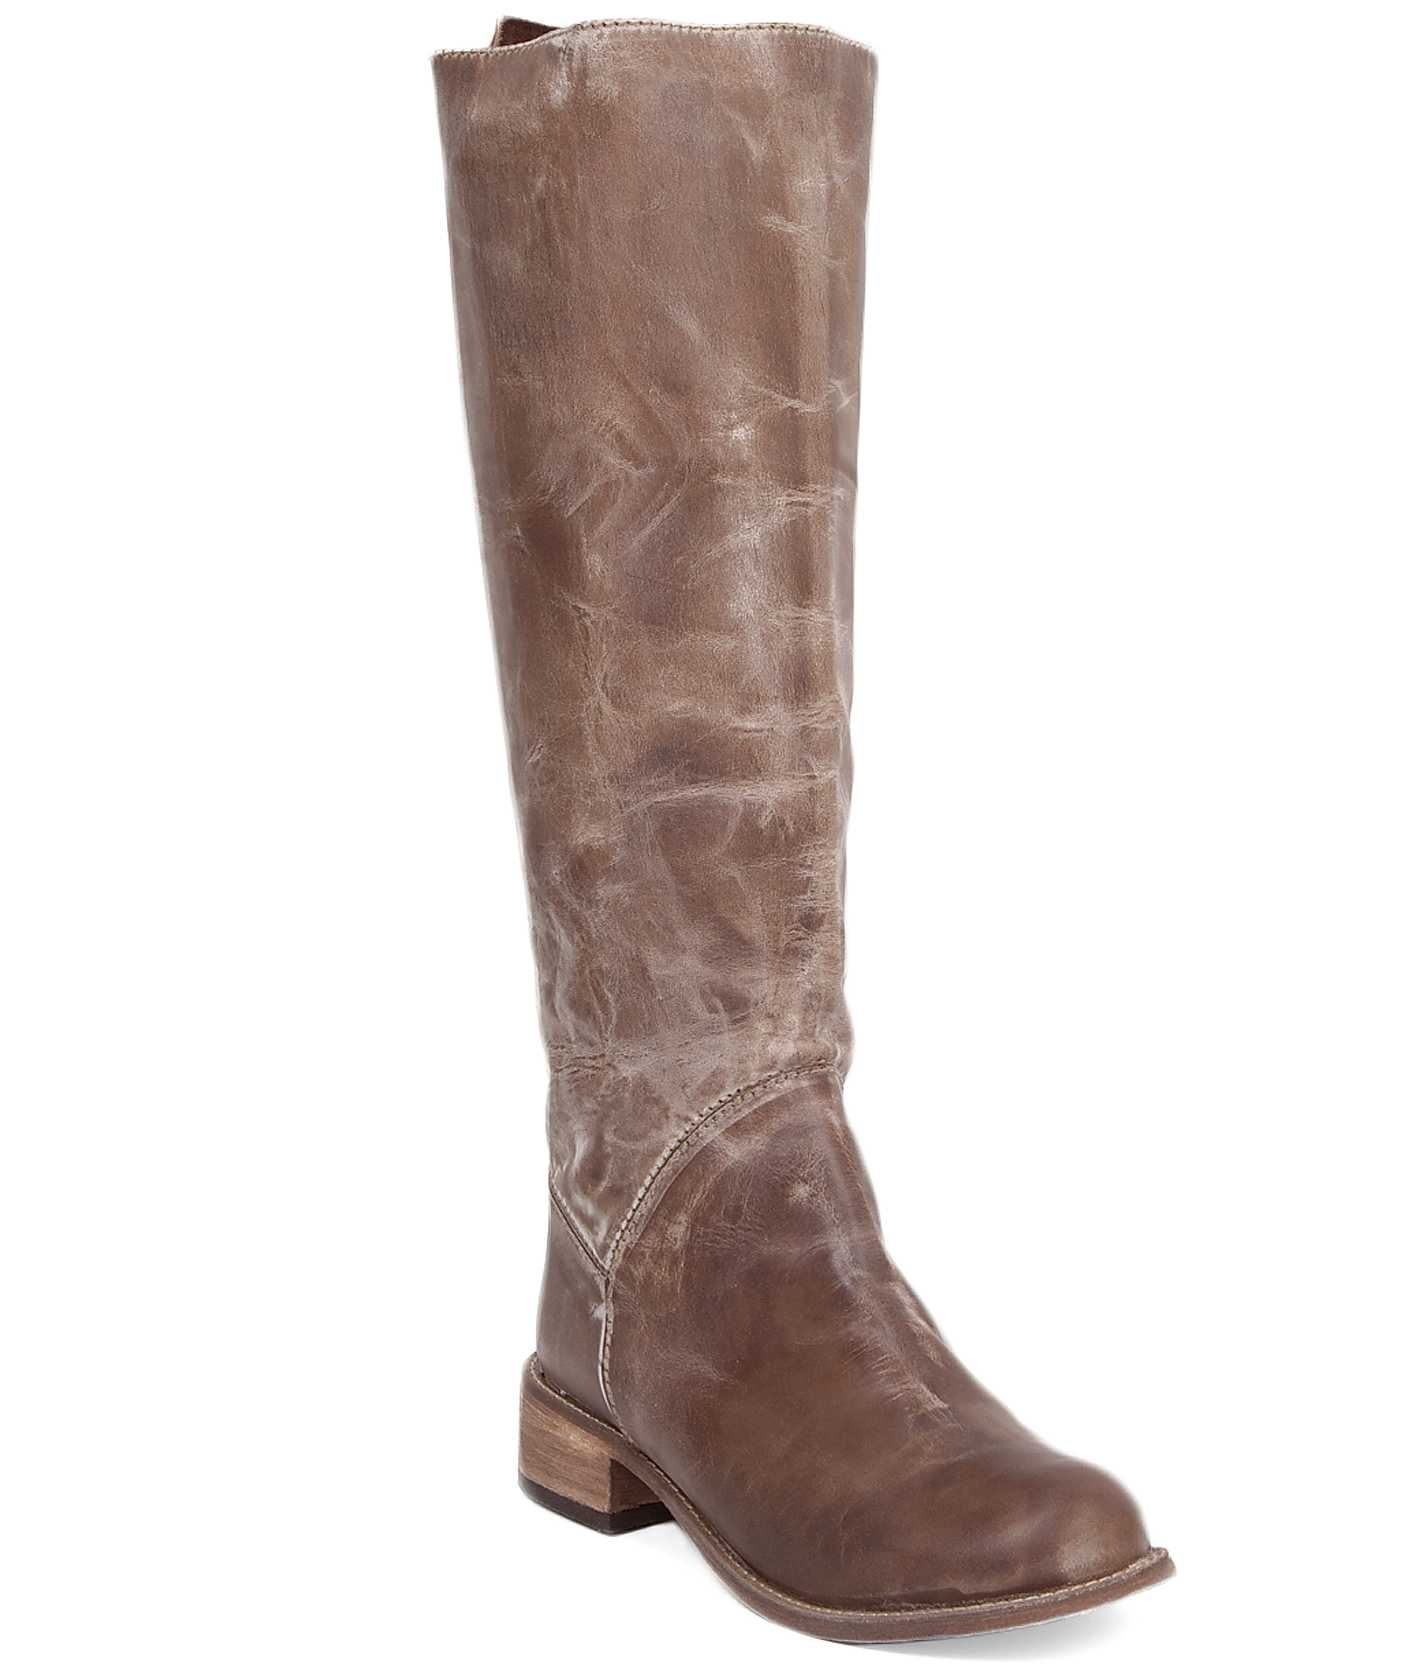 38dd00daca2 Indie Spirit by Corral Distressed Riding Boot - Women's Shoes ...